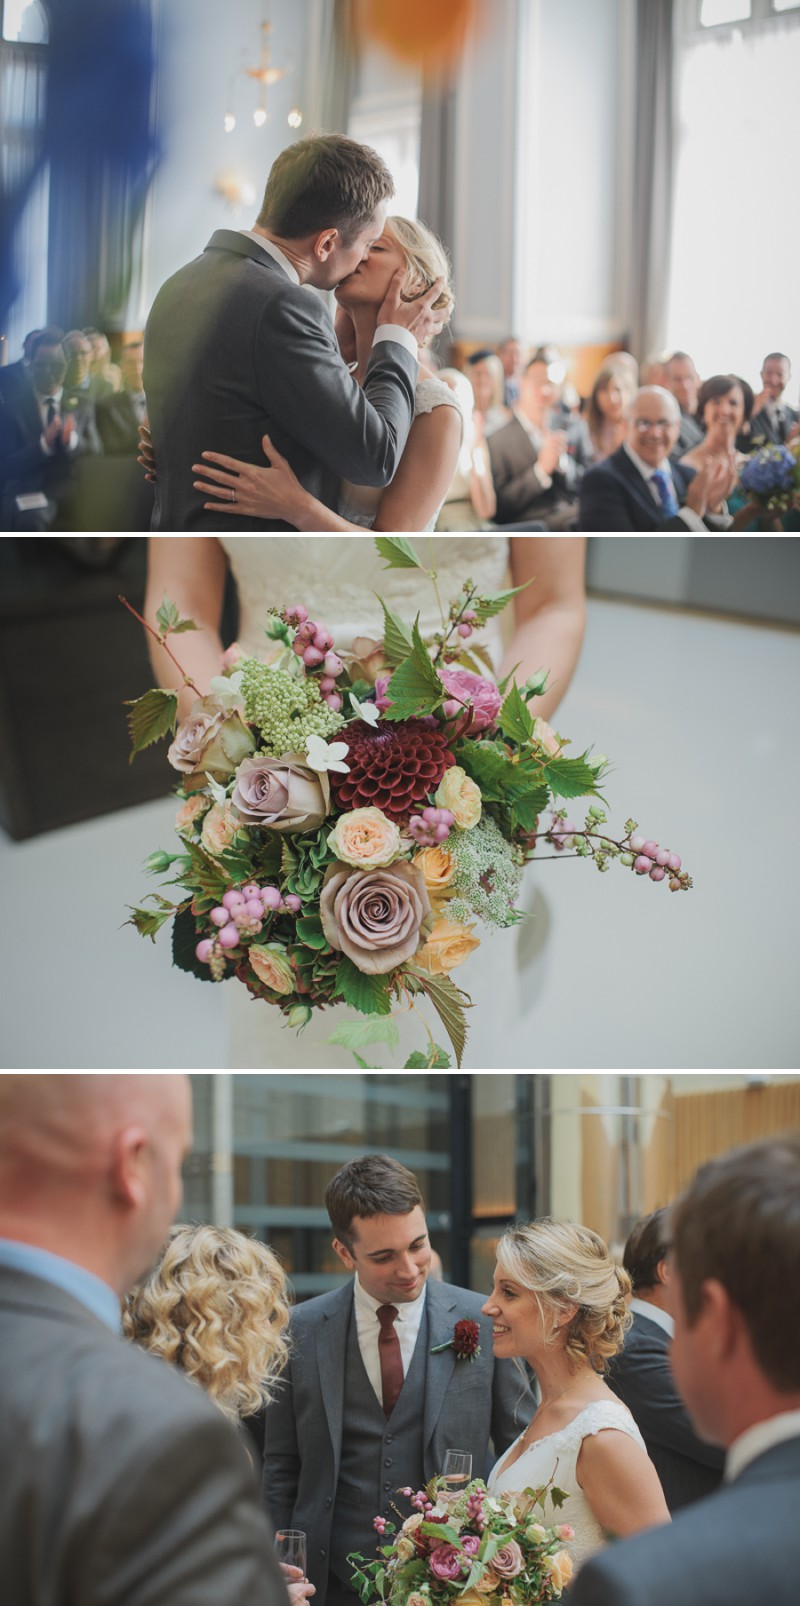 A Modern And Elegant London Wedding At Andaz Hotel With A Handpicked Bouquet And A Lusan Mandongus Dress By O&C Photography_0004